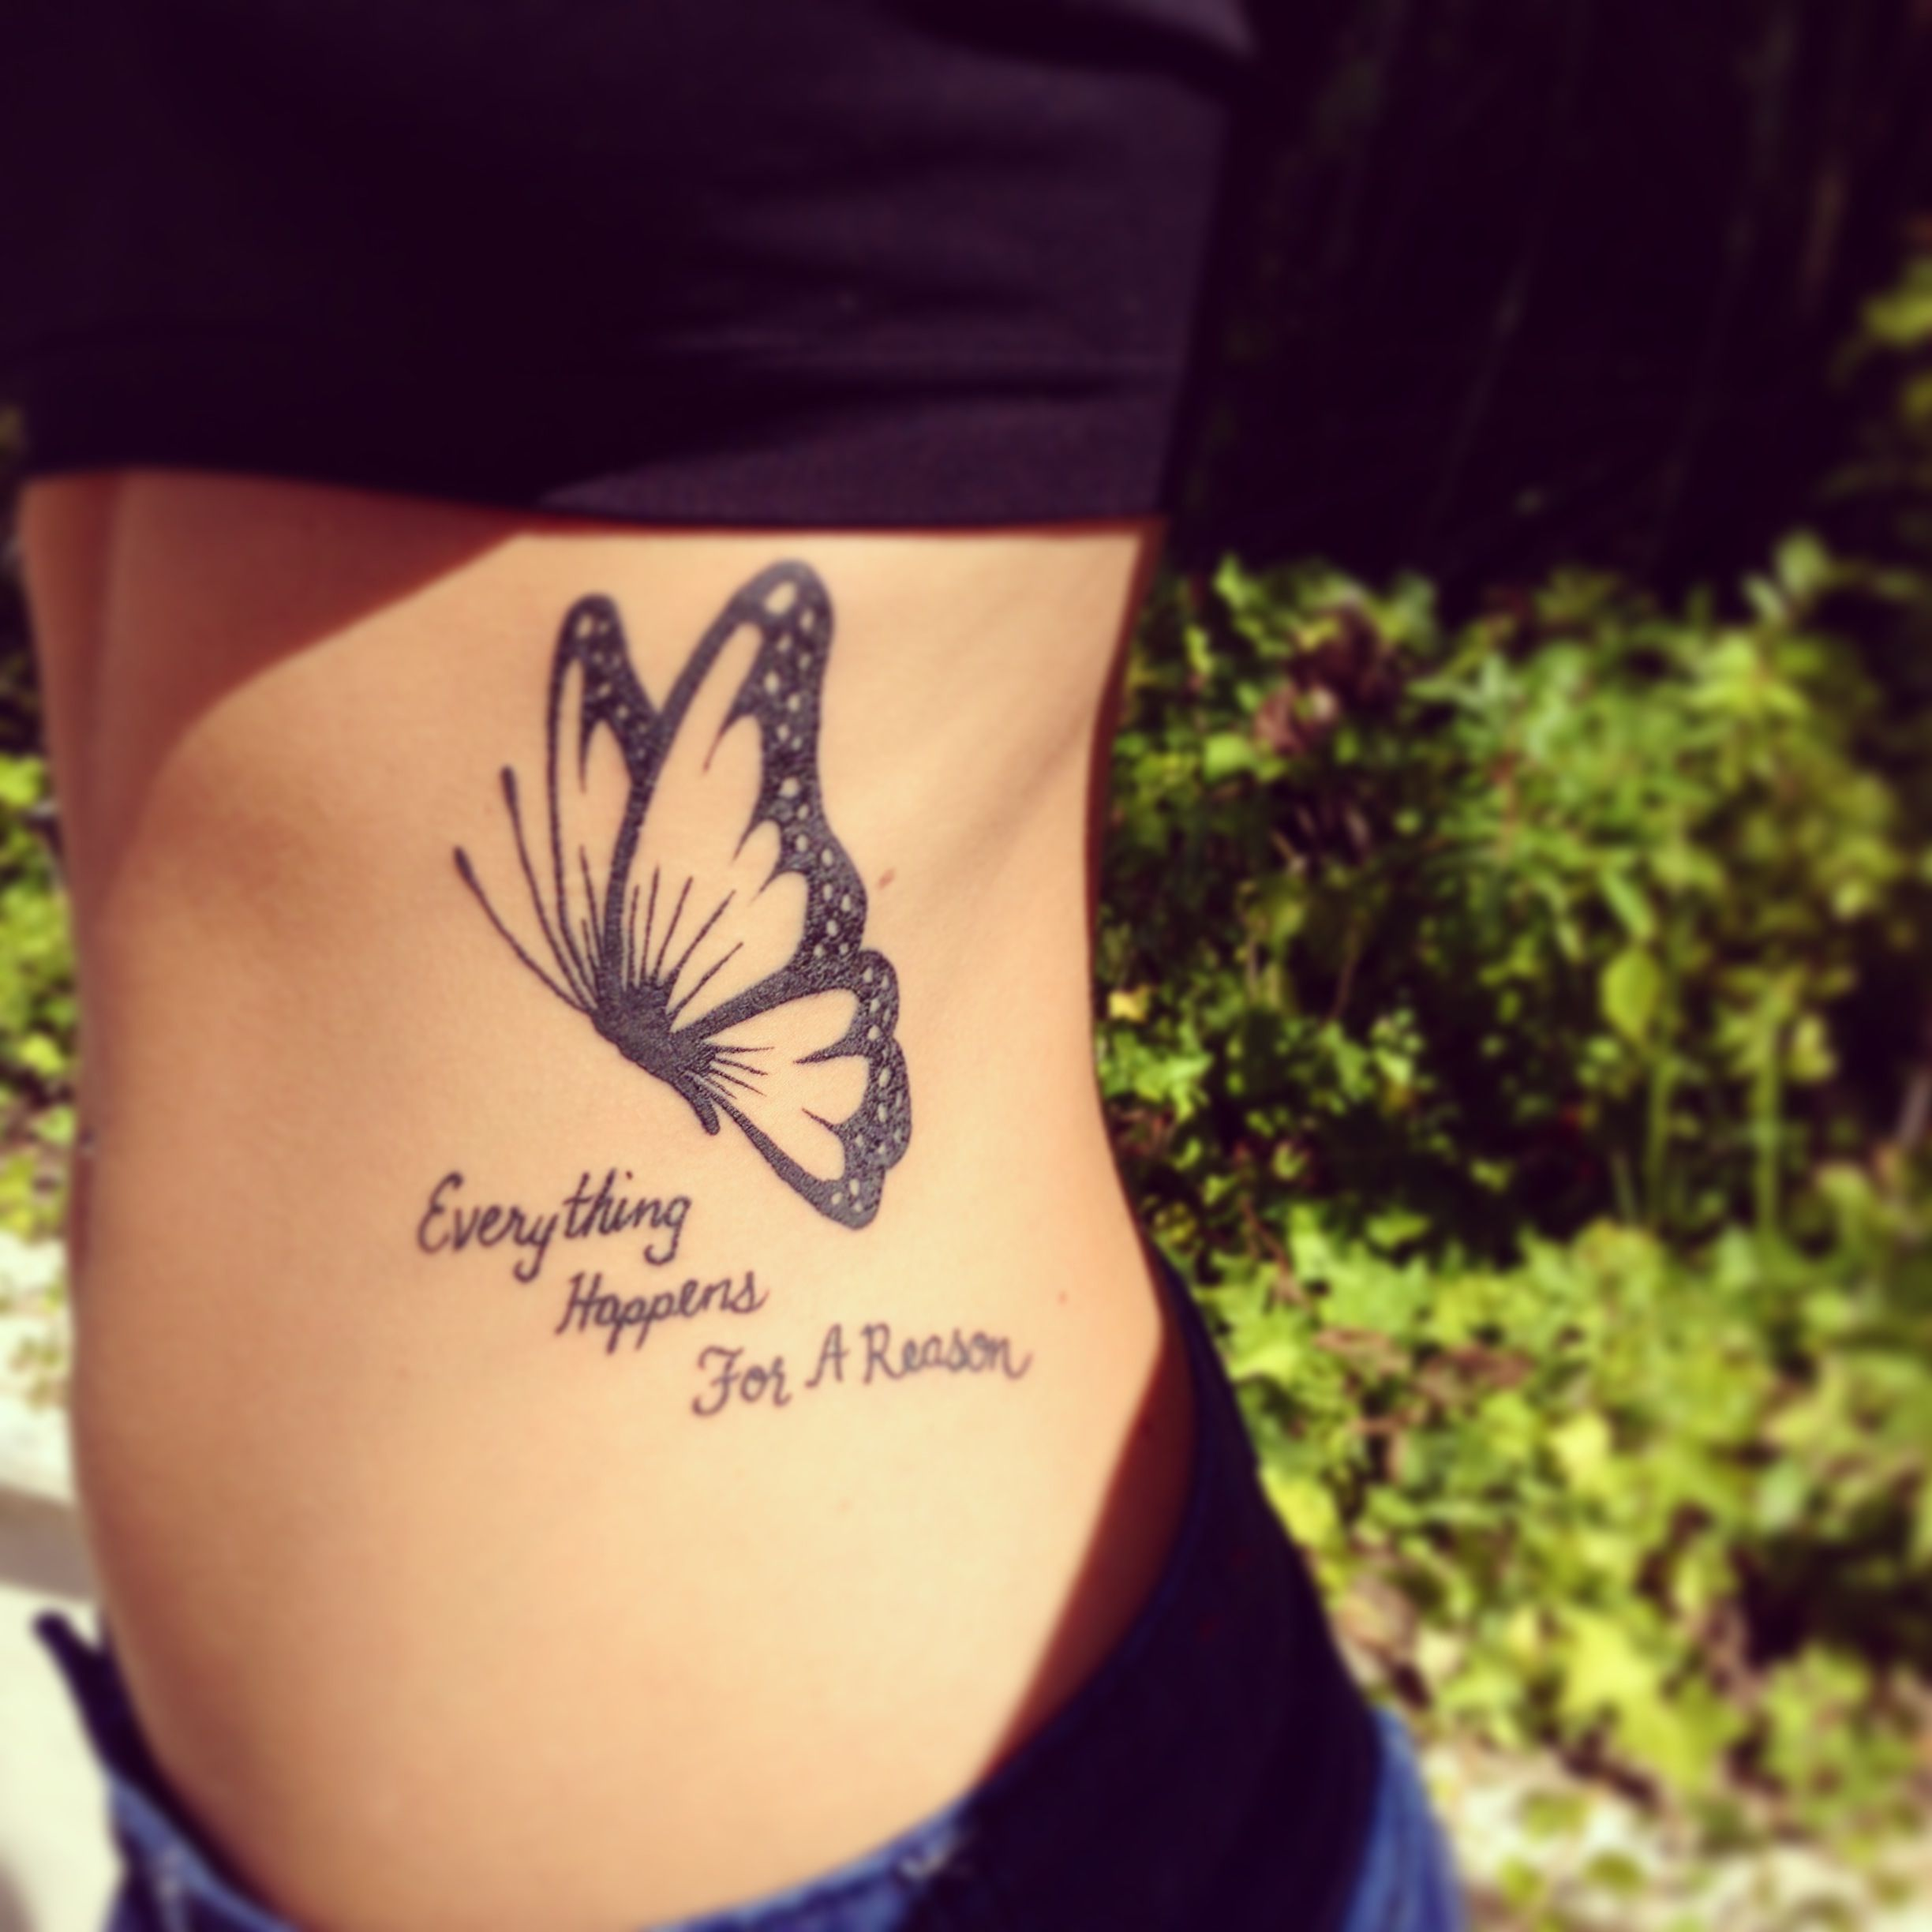 Not a huge fan of butterfly tats, but I like this one